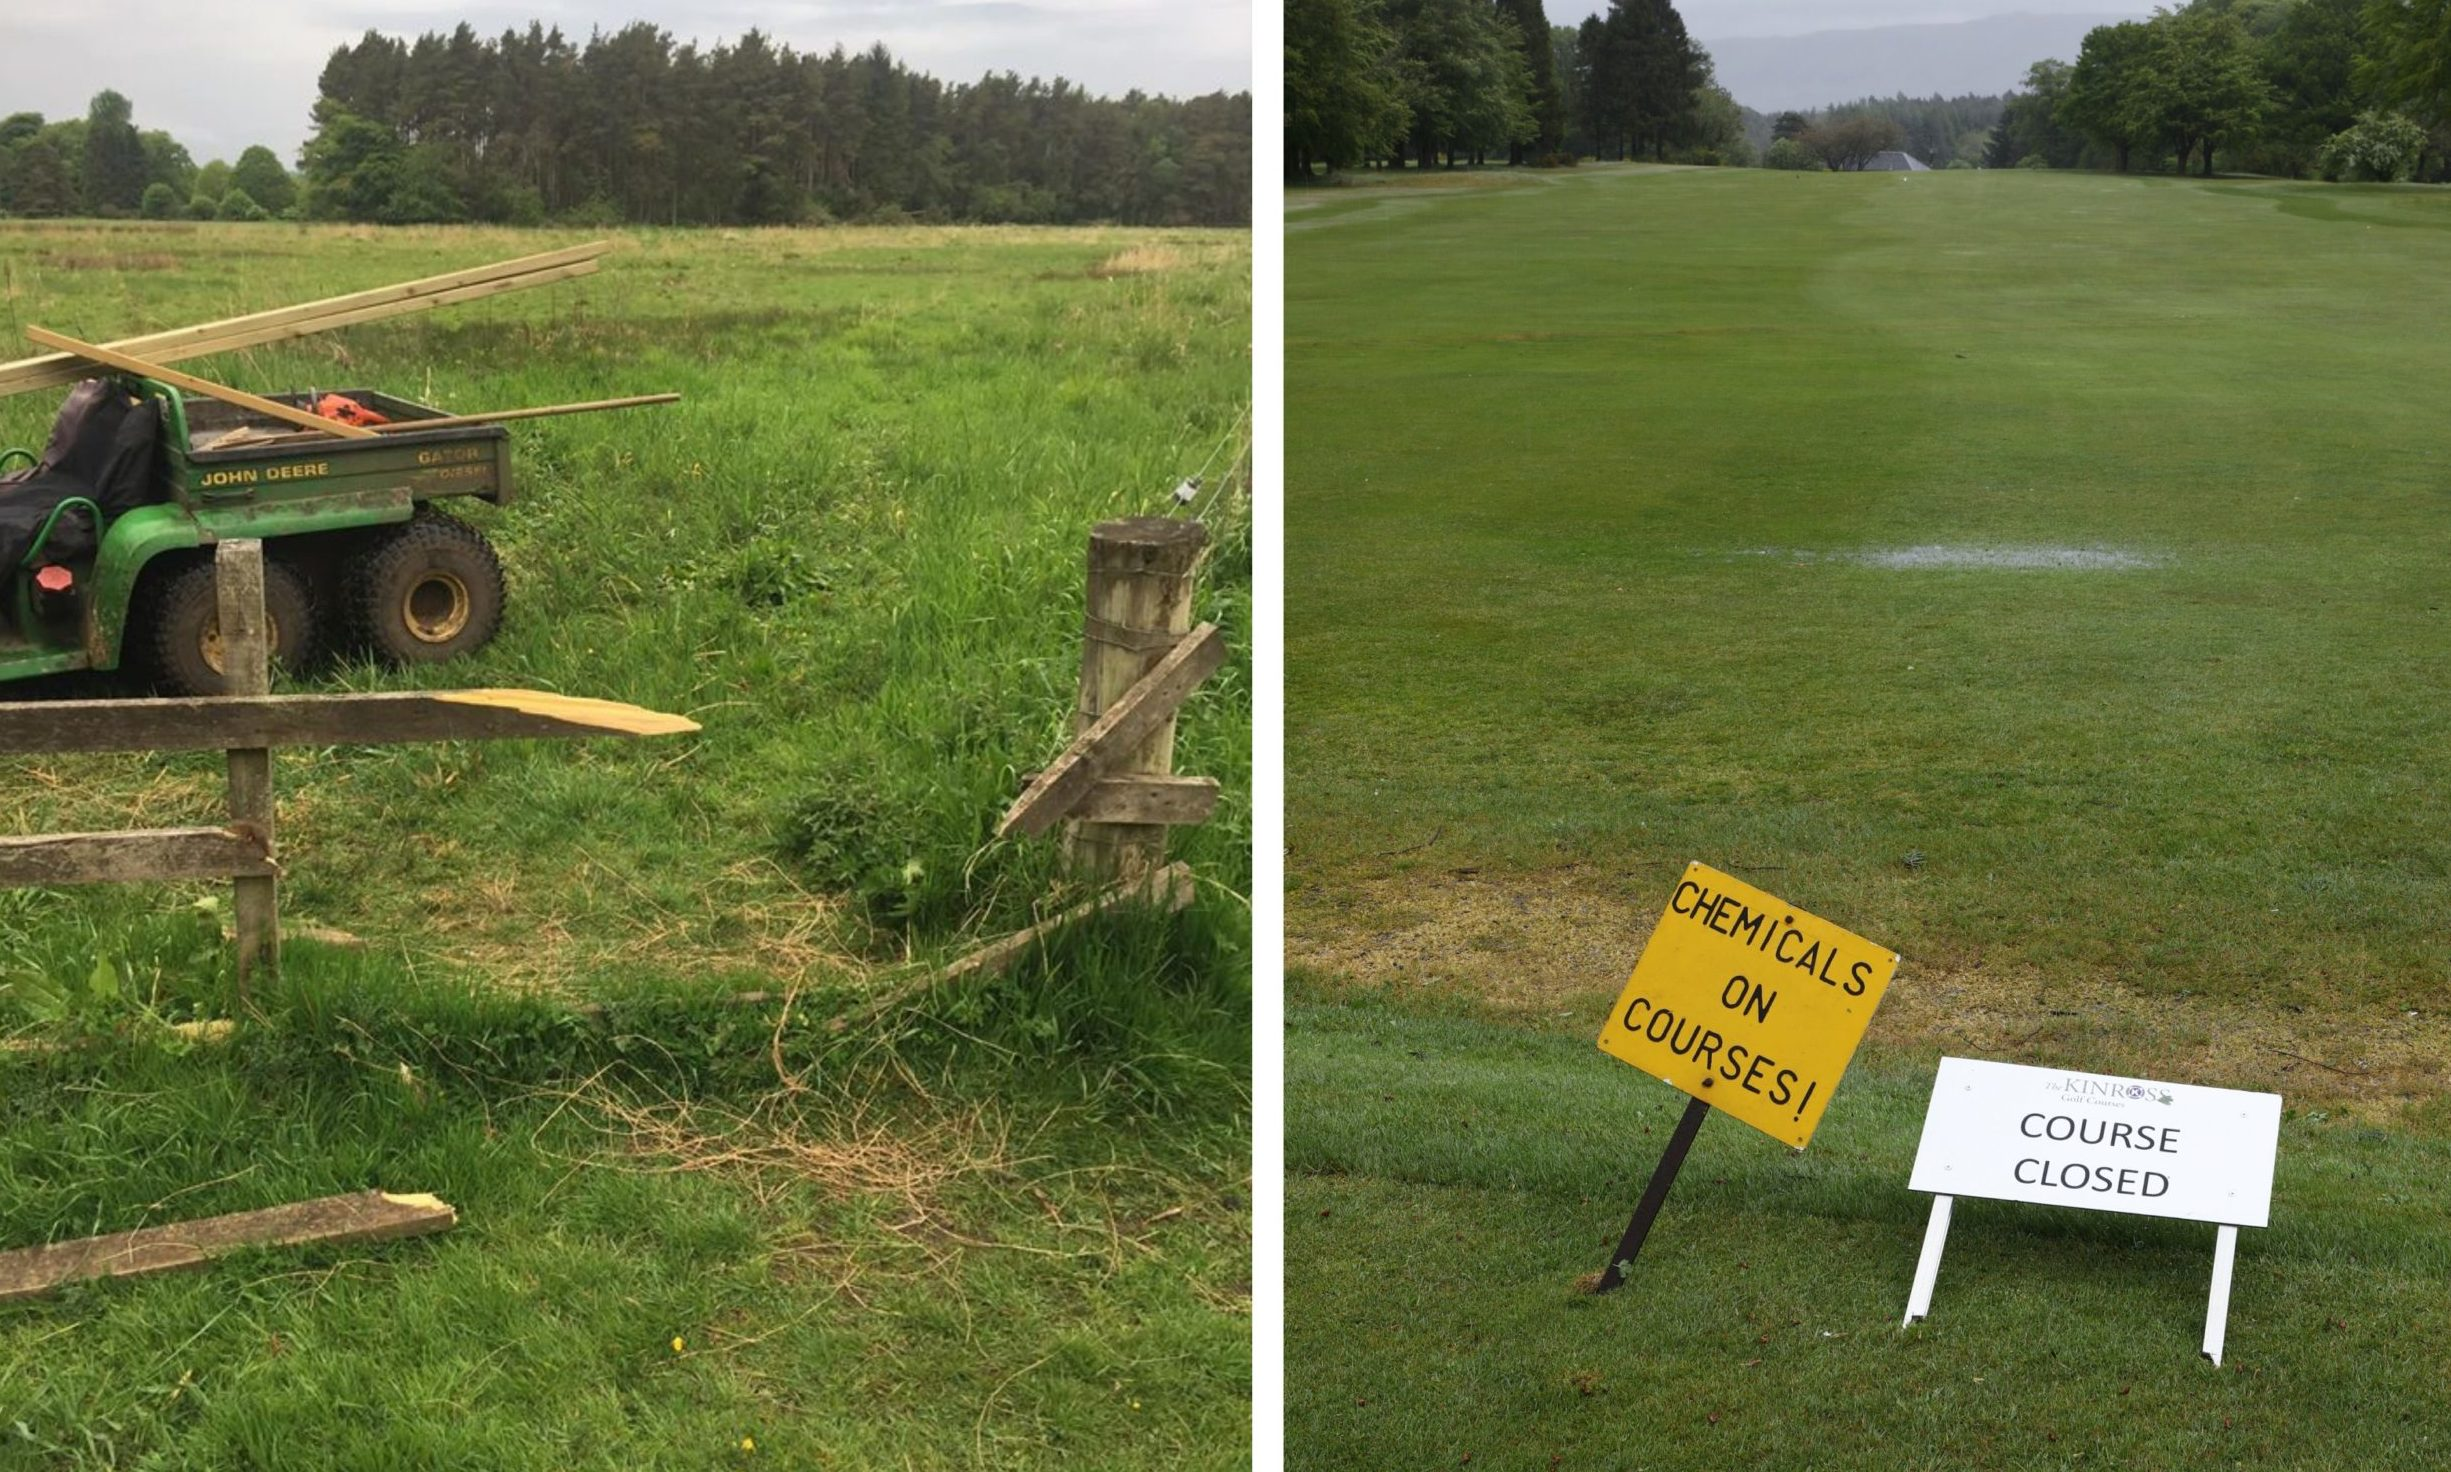 Damage at the golf course.